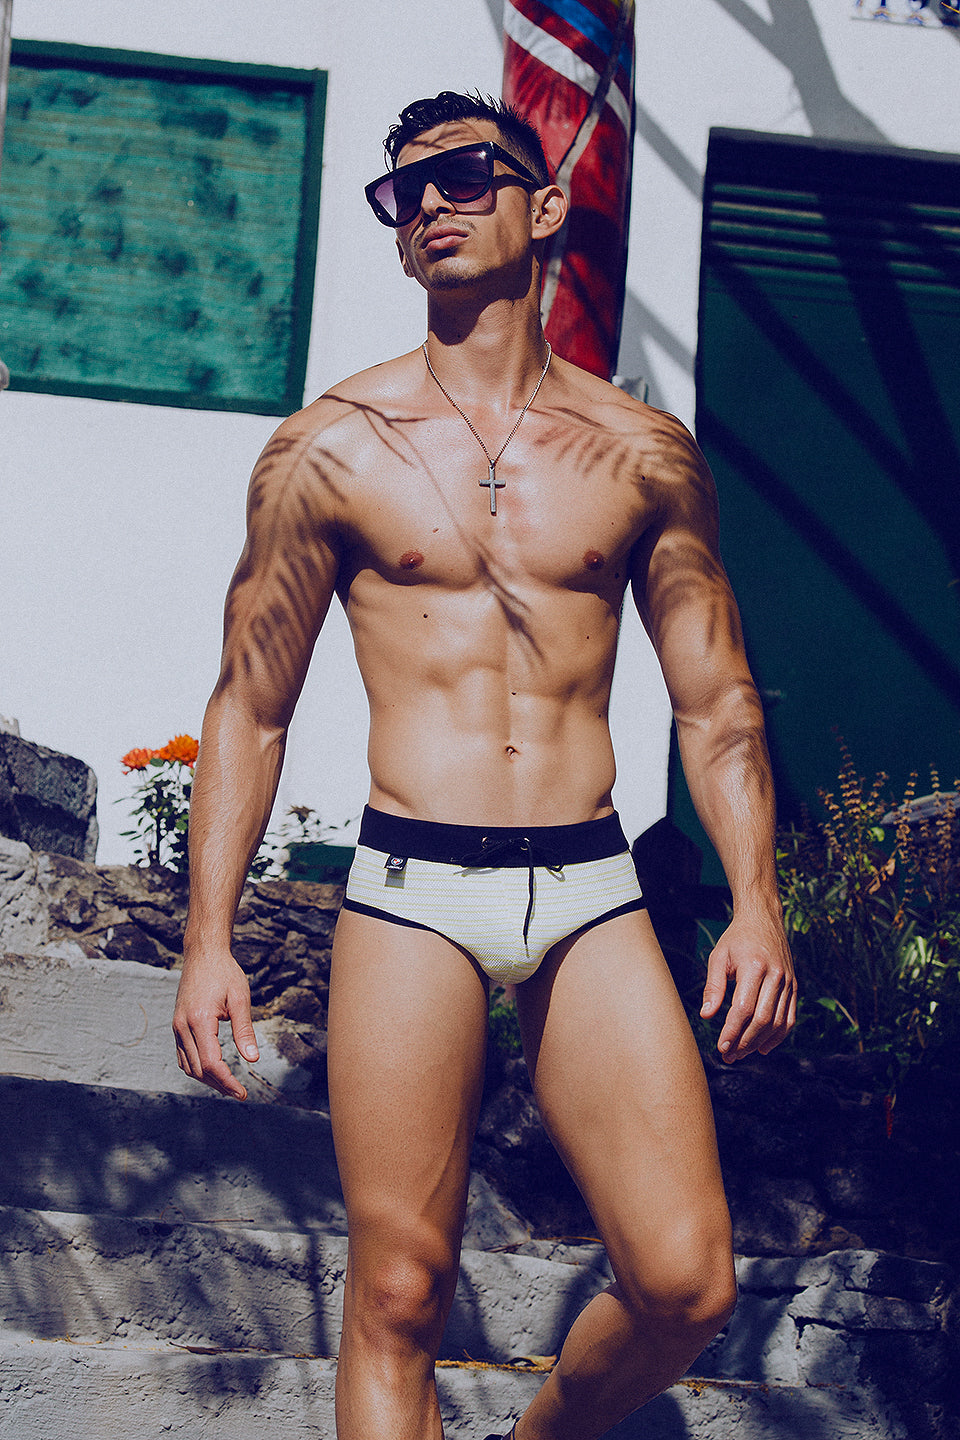 It's About The Man - Adrian C Martin - Model Mikel Roman Wears LODOLI Swimwear